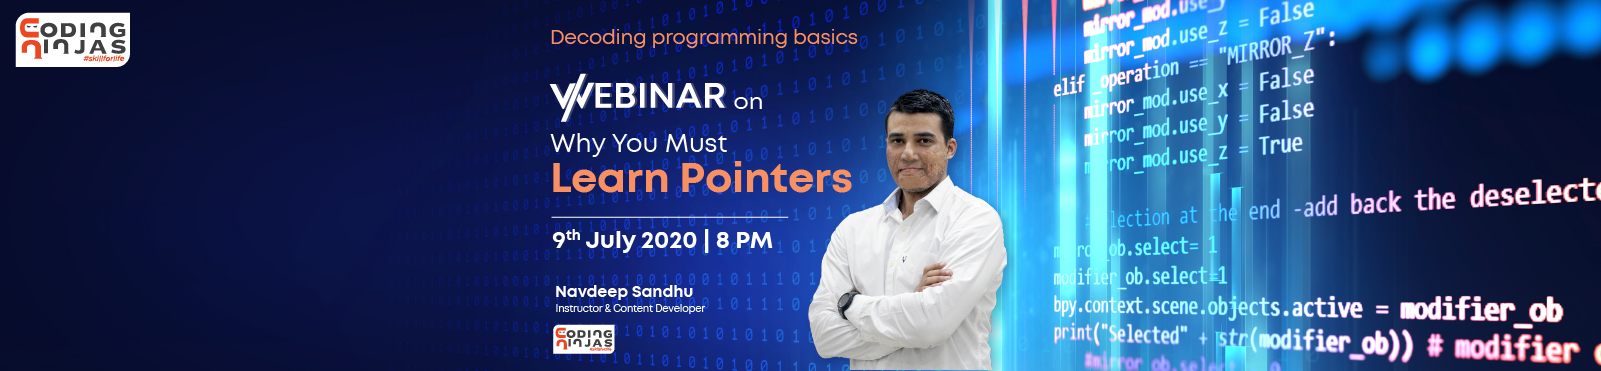 Why you must learn pointers?